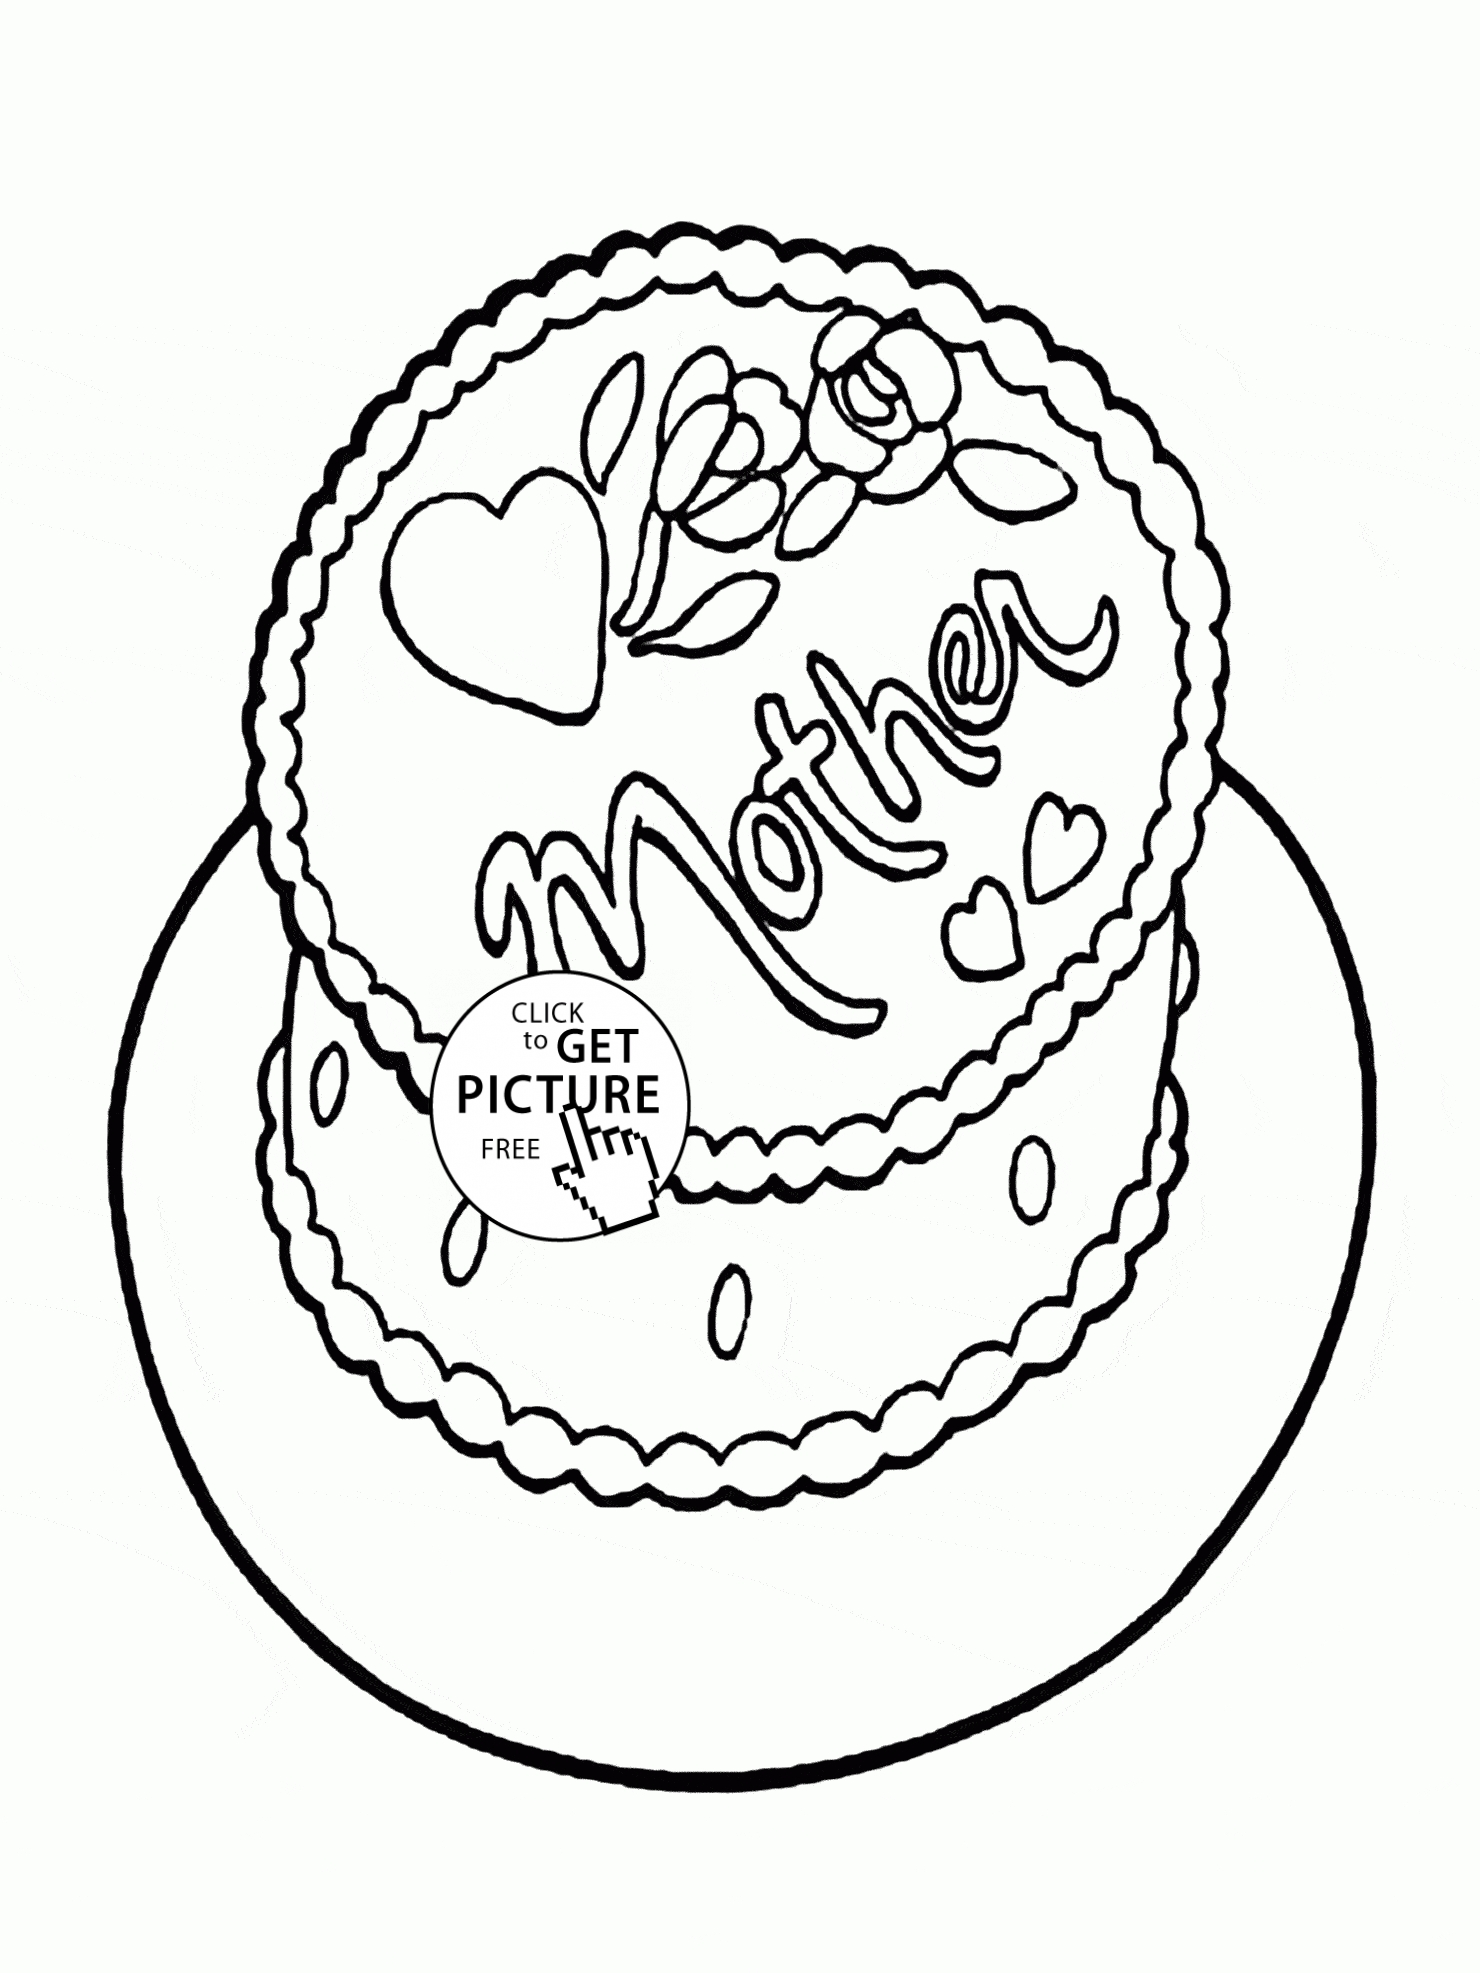 Mothers Day Coloring Pages - Cake for Mom Mother S Day Coloring Page for Kids